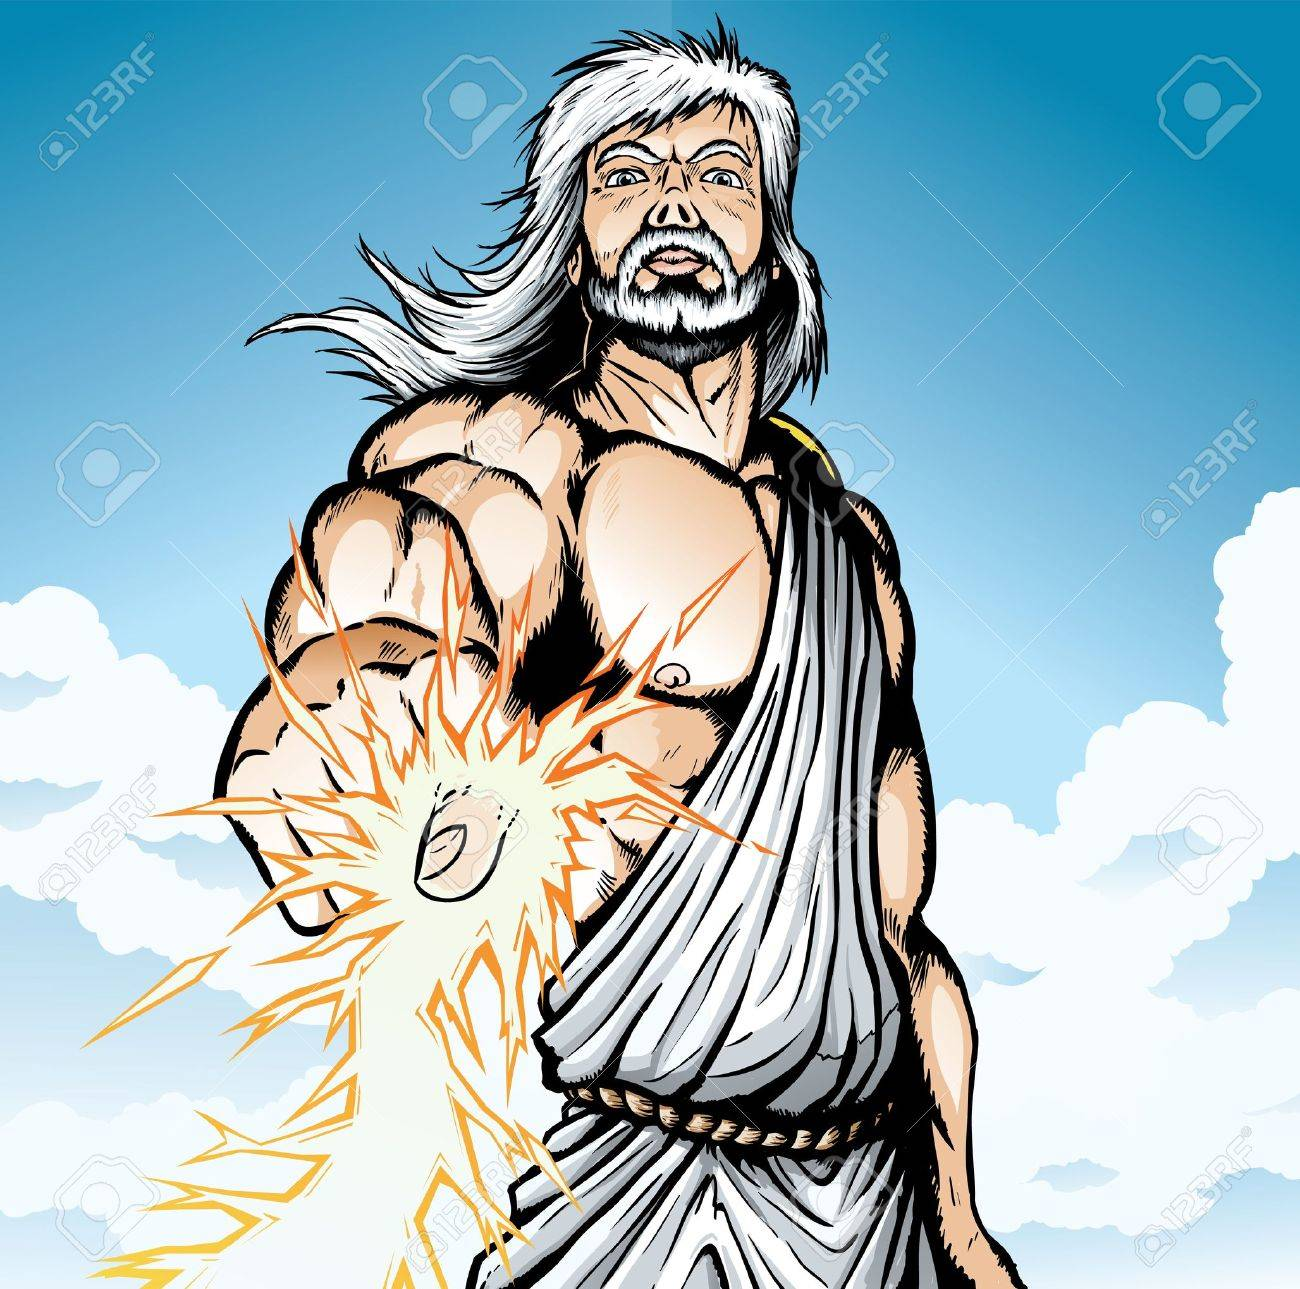 angry zeus royalty free cliparts vectors and stock illustration